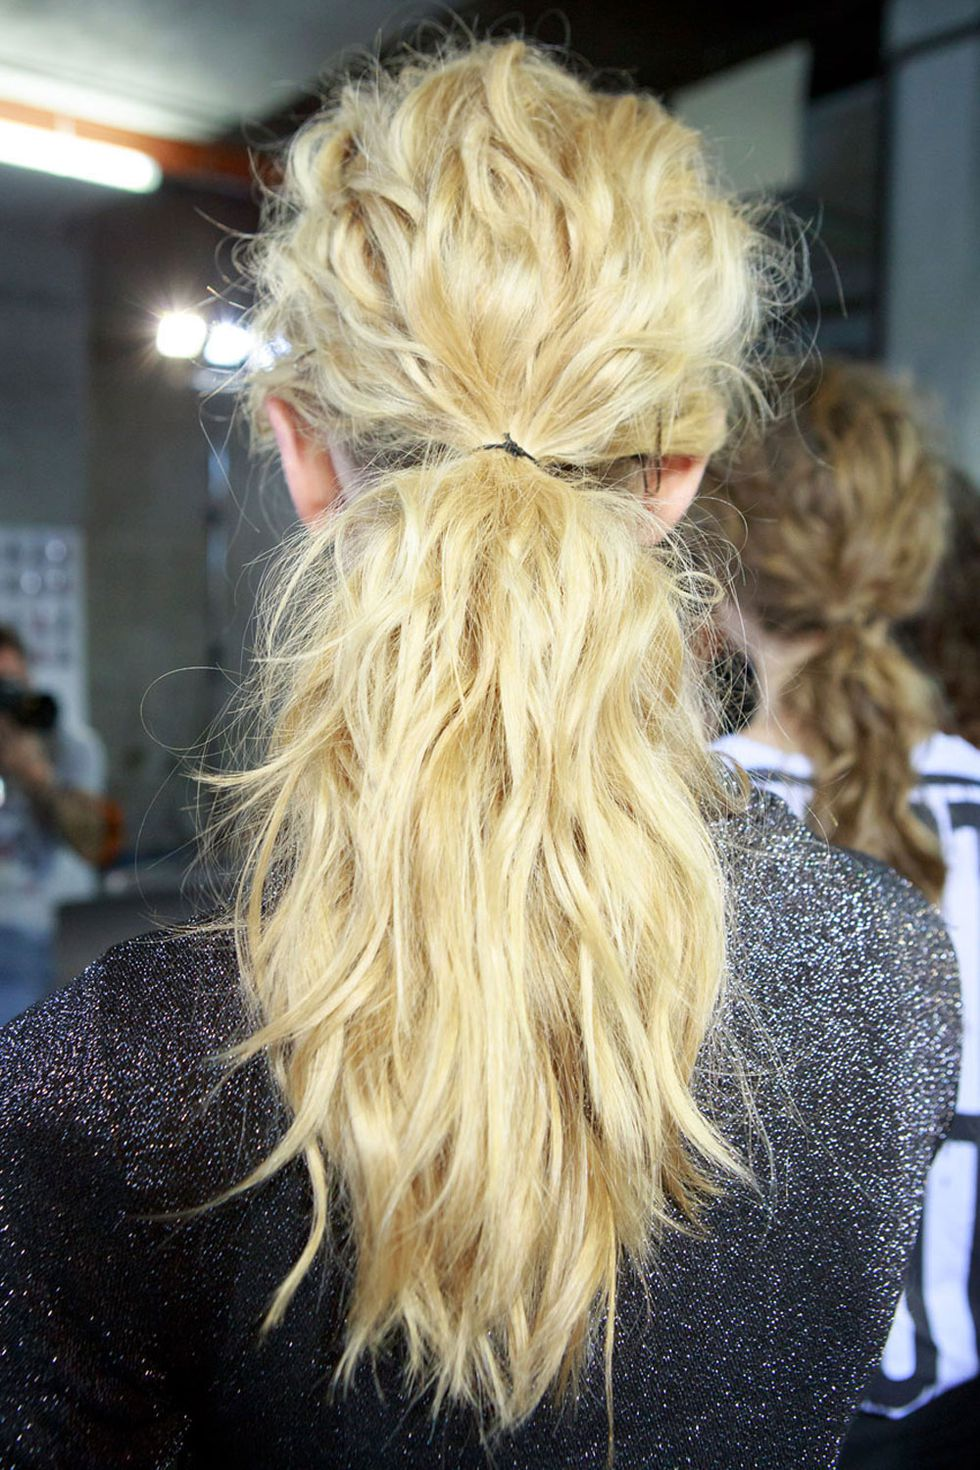 wedding-guest-hair-ponytail-style-beauty-ponytail-wavy-messy-low-pony.jpg